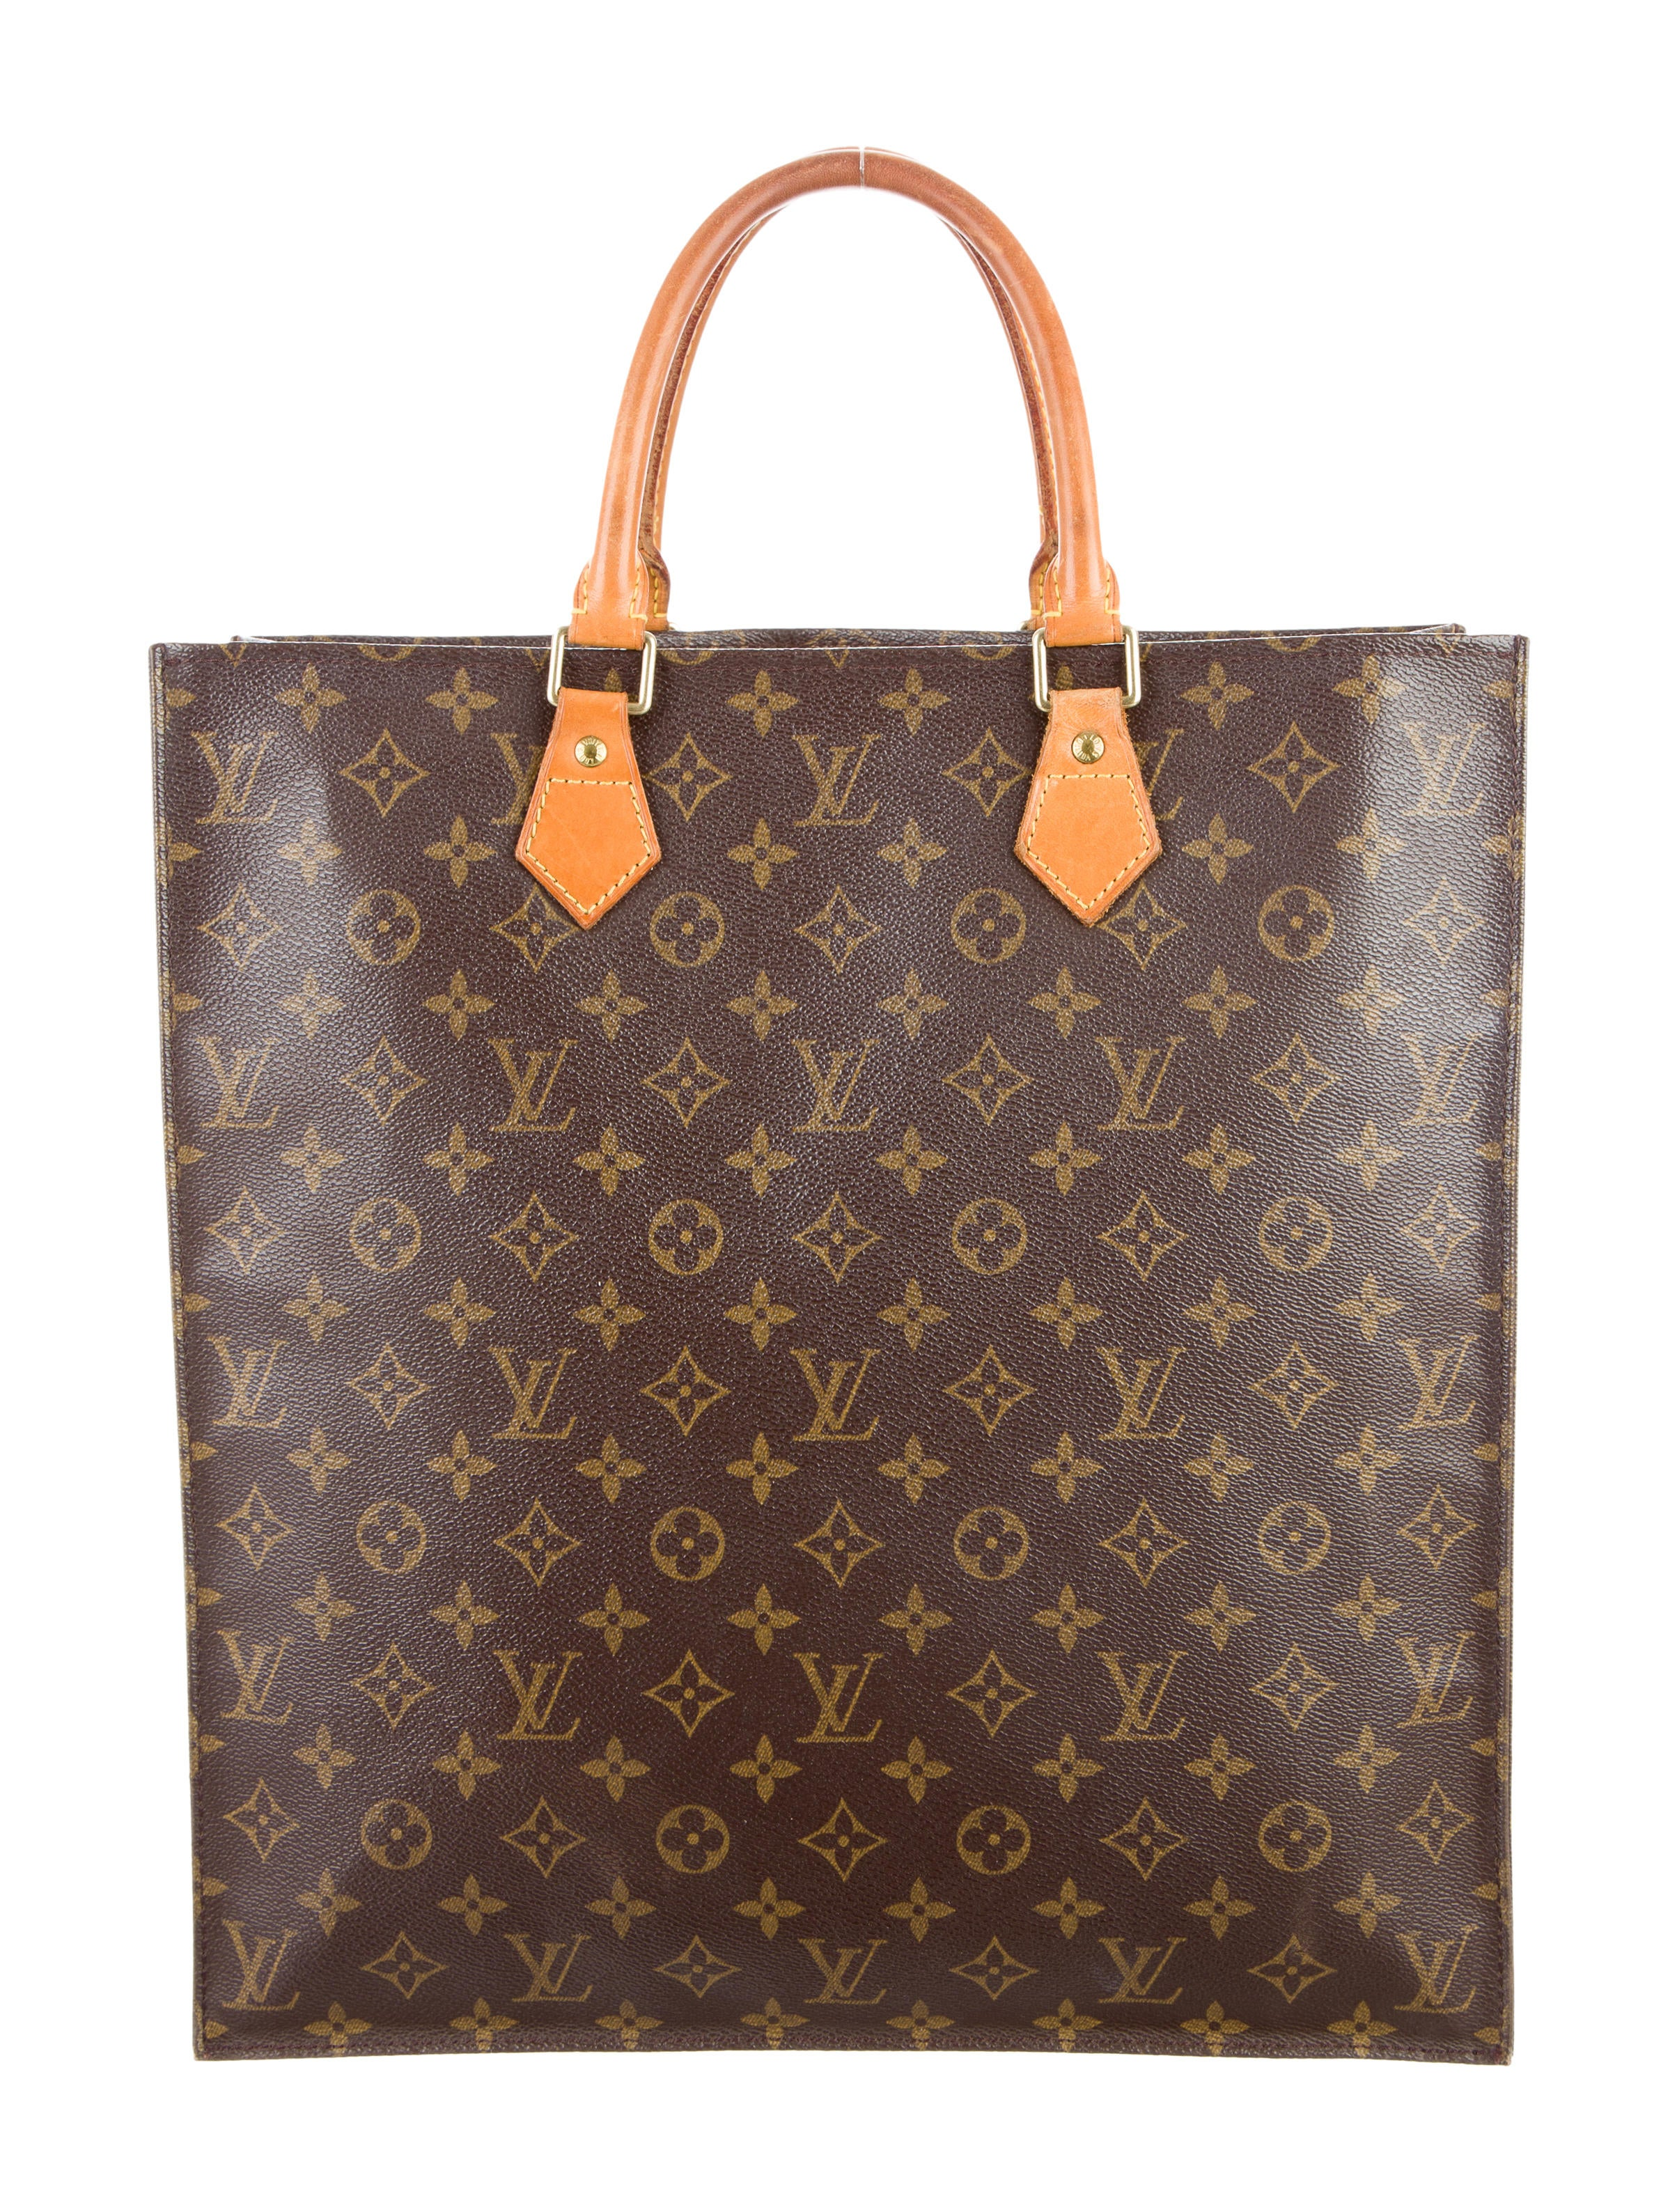 Louis vuitton monogram sac plat handbags lou107266 for Louis vuitton monogram miroir sac plat